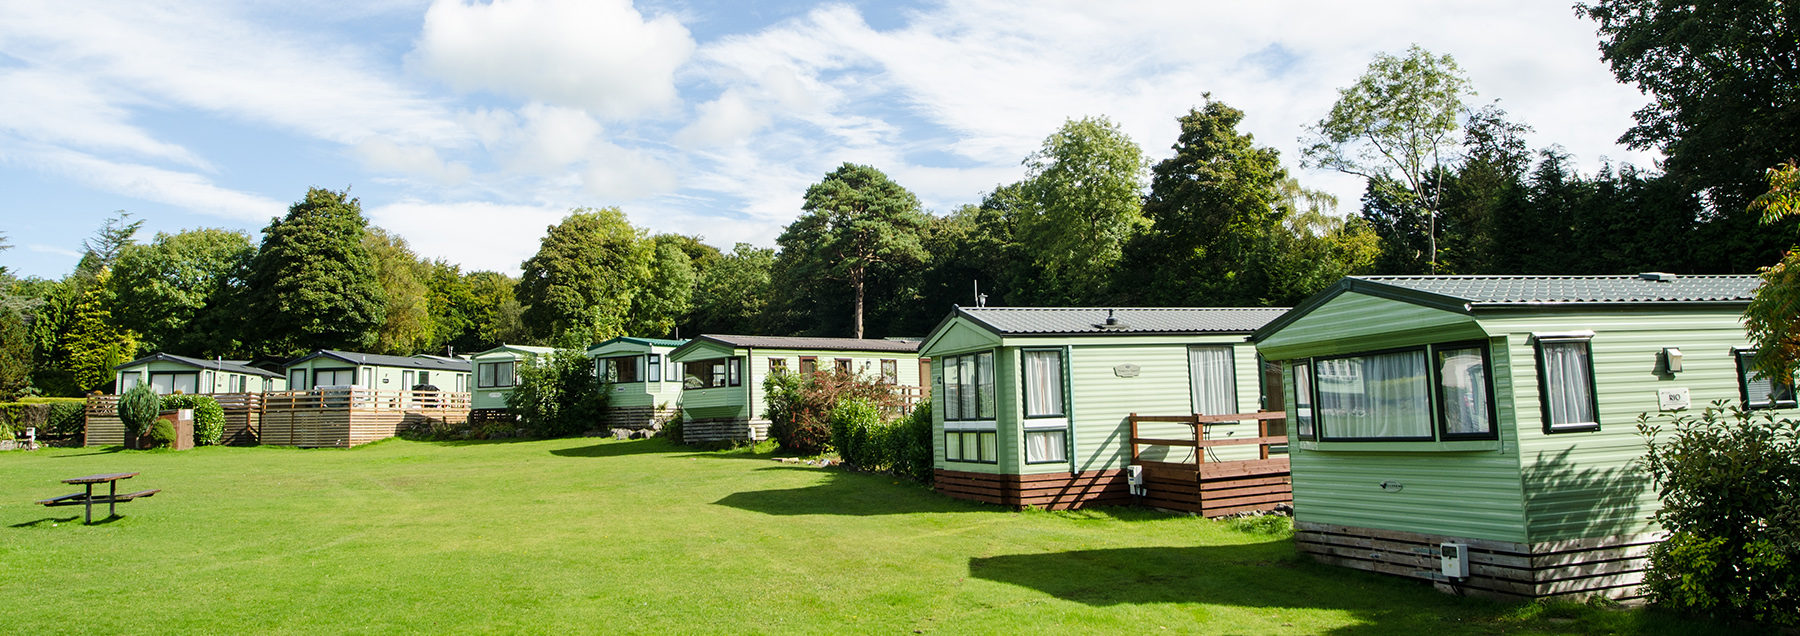 Static caravans at Fell end in Arnside and Silverdale